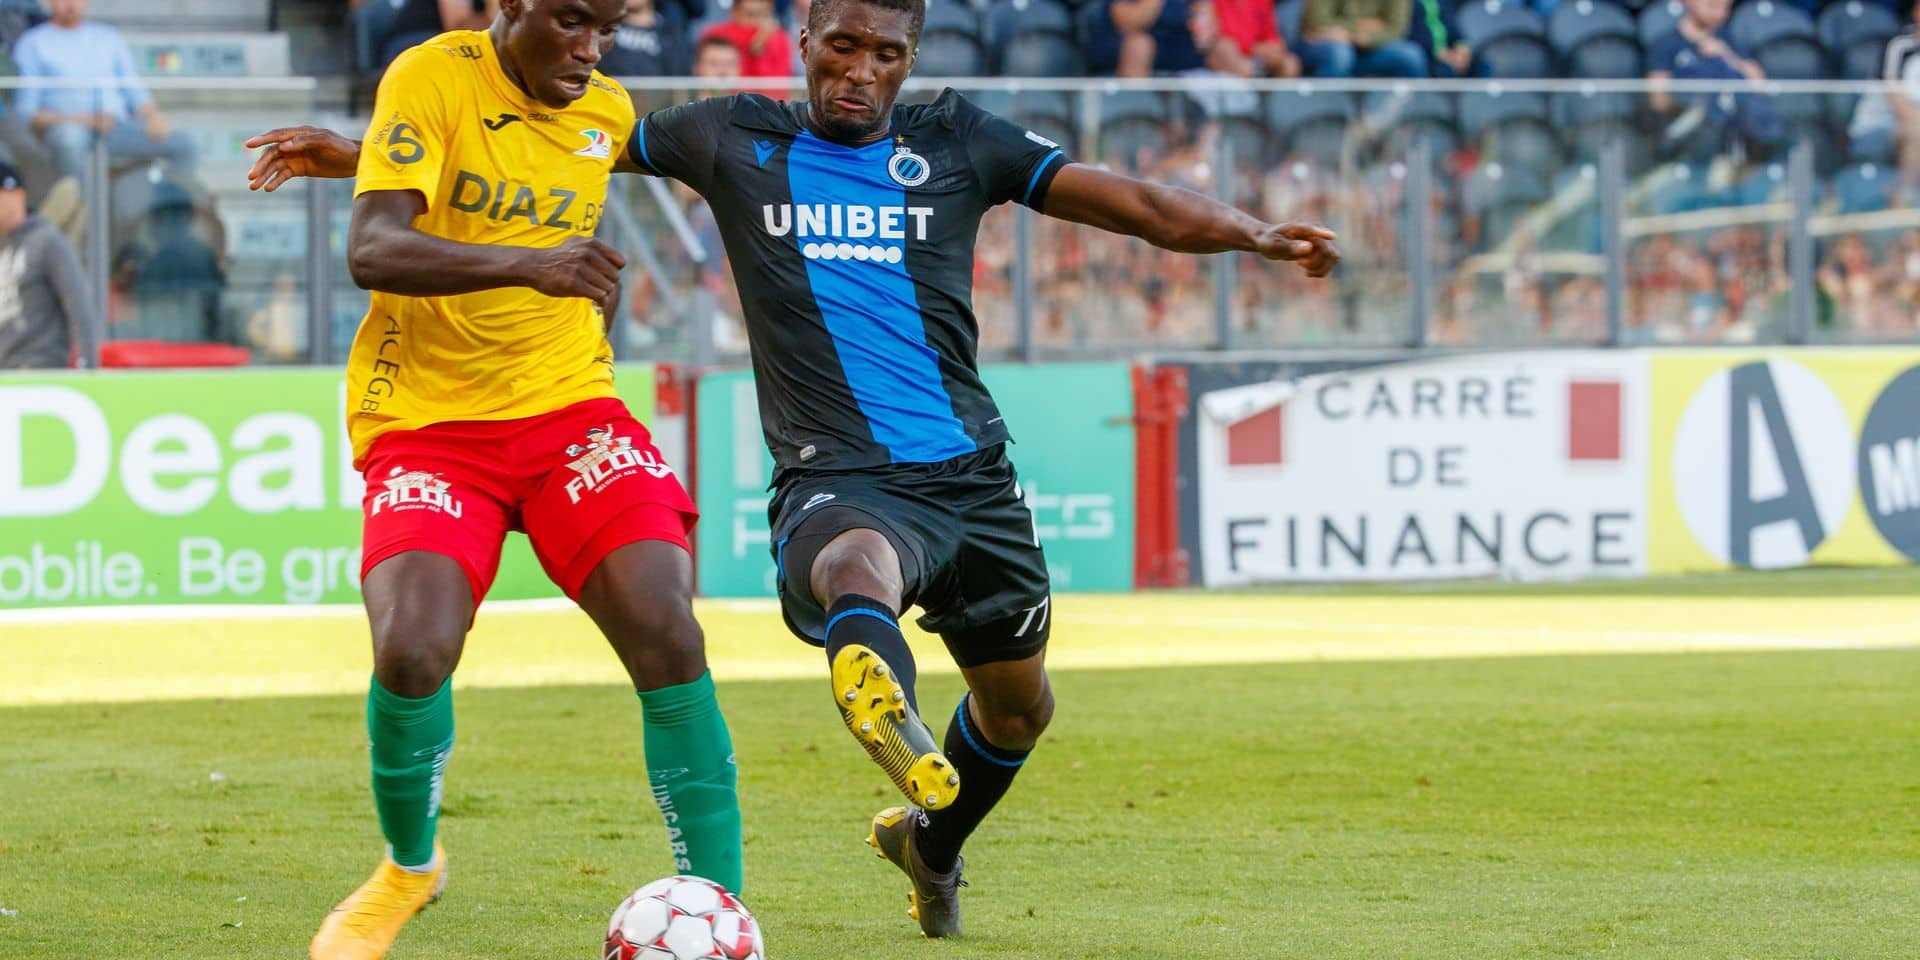 Oostende's Fashion Junior Sakala and Club's Clinton Mata fight for the ball during a soccer match between KV Oostende and Club Brugge KV, Saturday 10 August 2019 in Oostende, on the third day of the 'Jupiler Pro League' Belgian soccer championship season 2019-2020. BELGA PHOTO KURT DESPLENTER